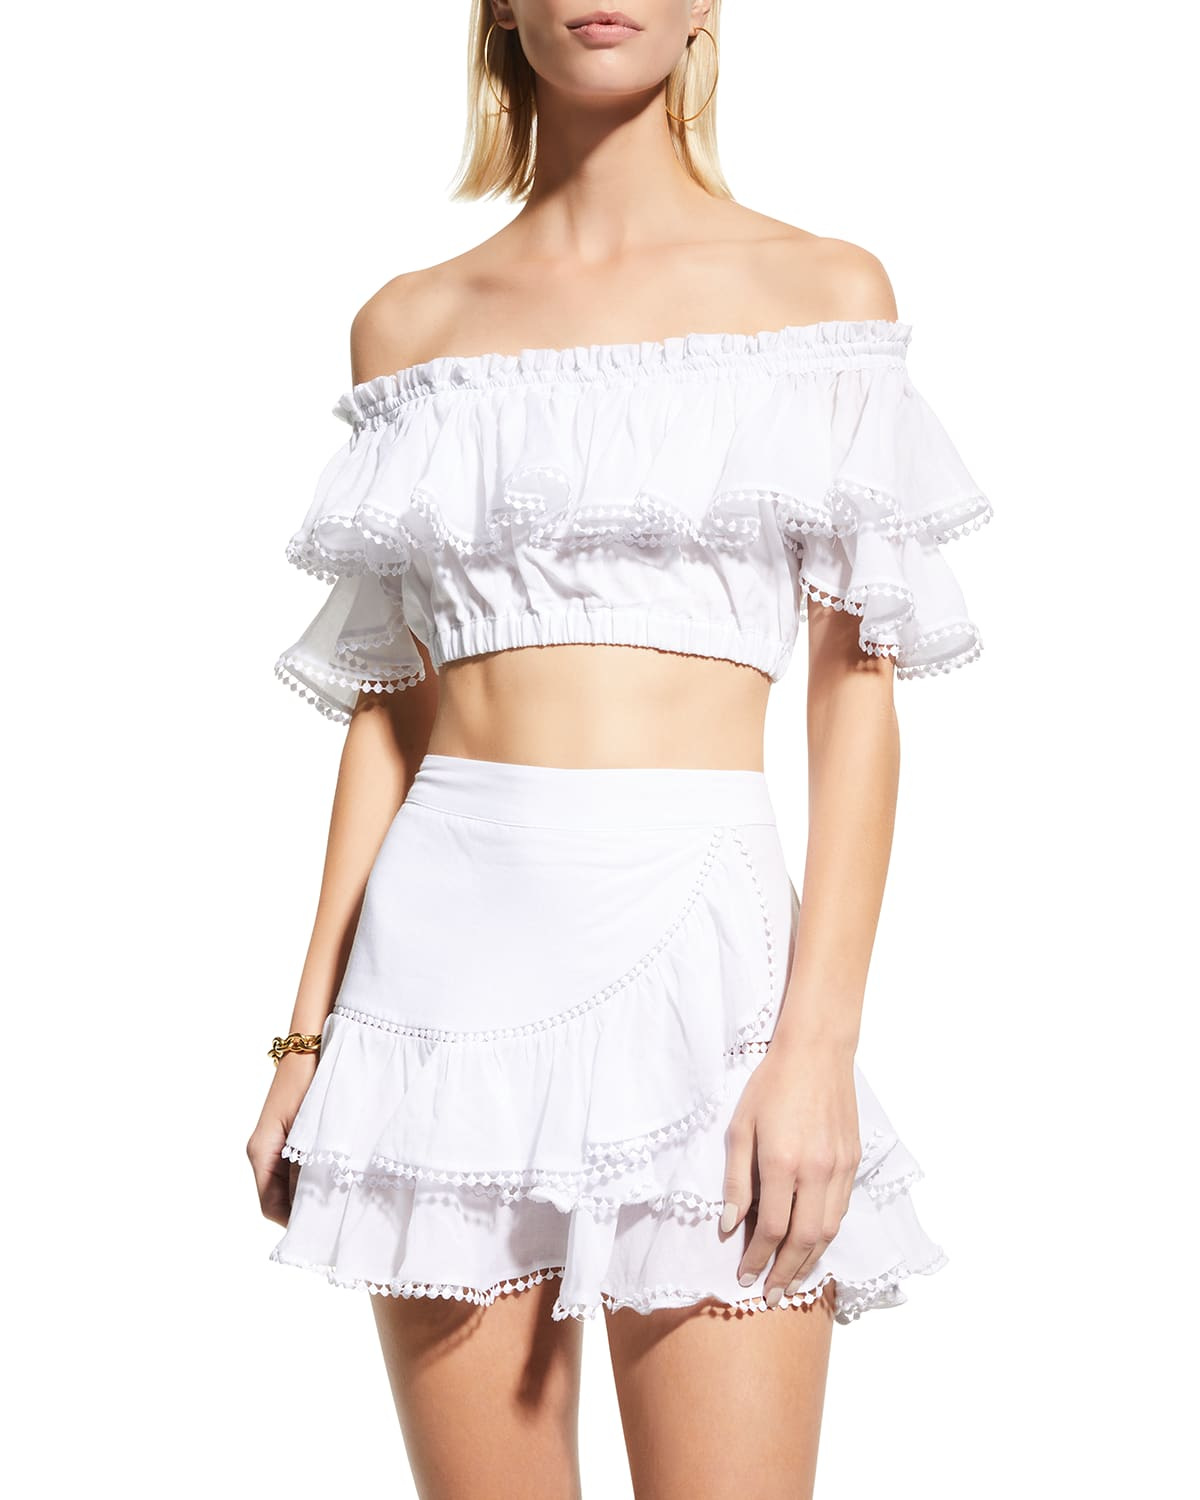 Cata Tiered Lace Crop Top